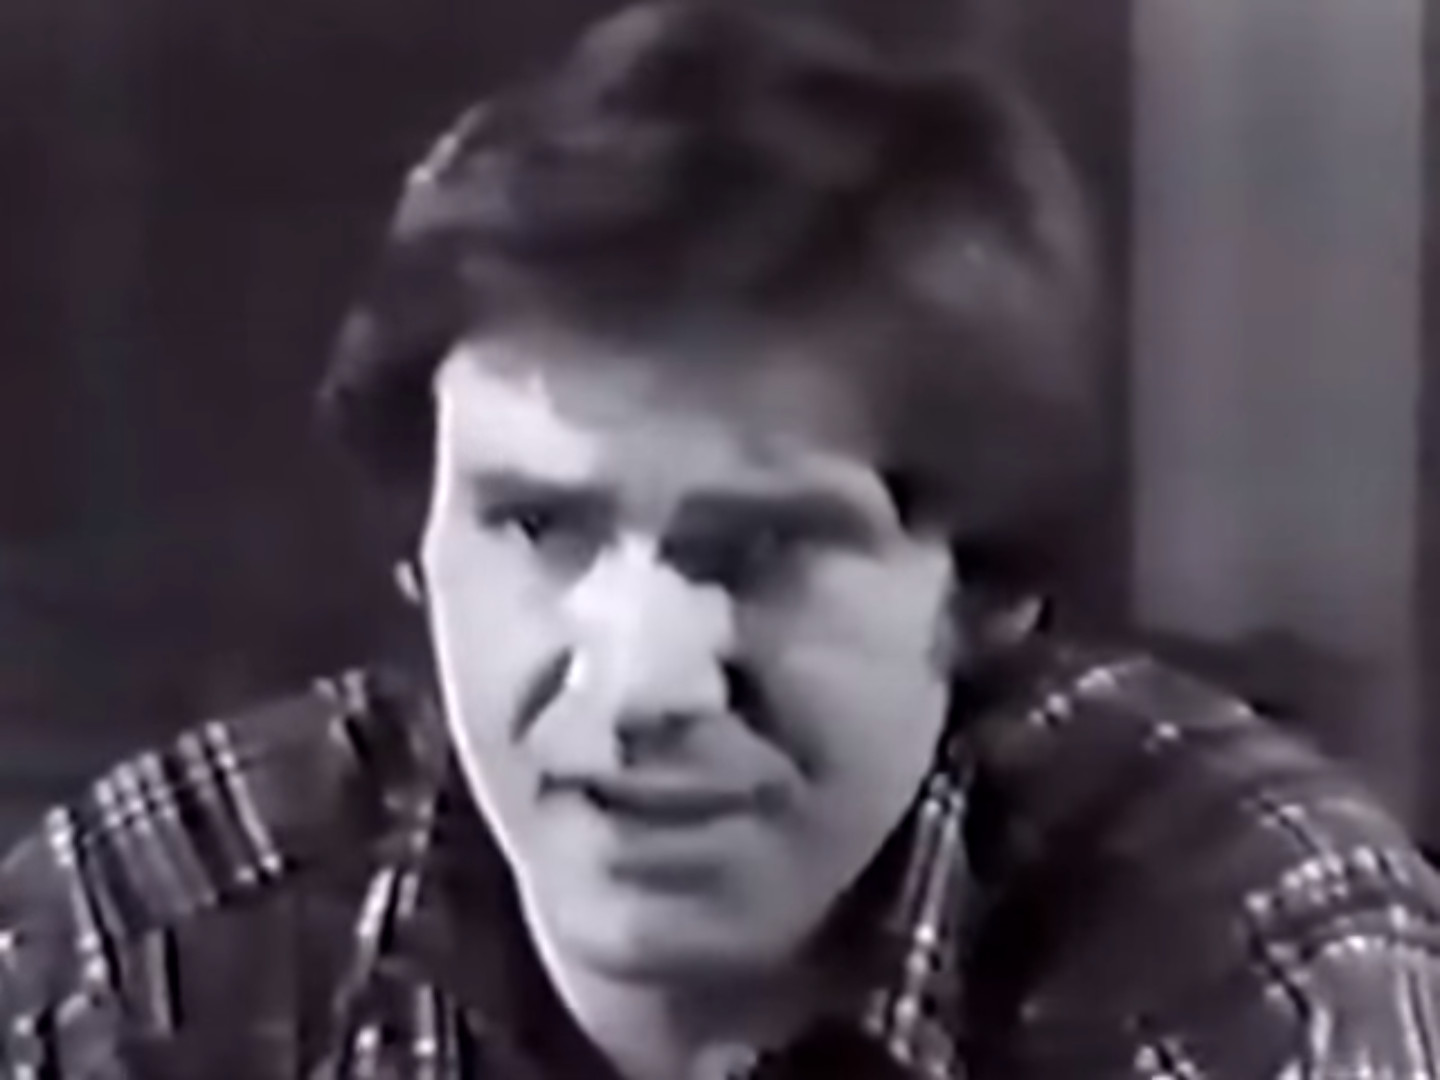 harrison ford star wars audition tape 203331 photos the blemish. Cars Review. Best American Auto & Cars Review